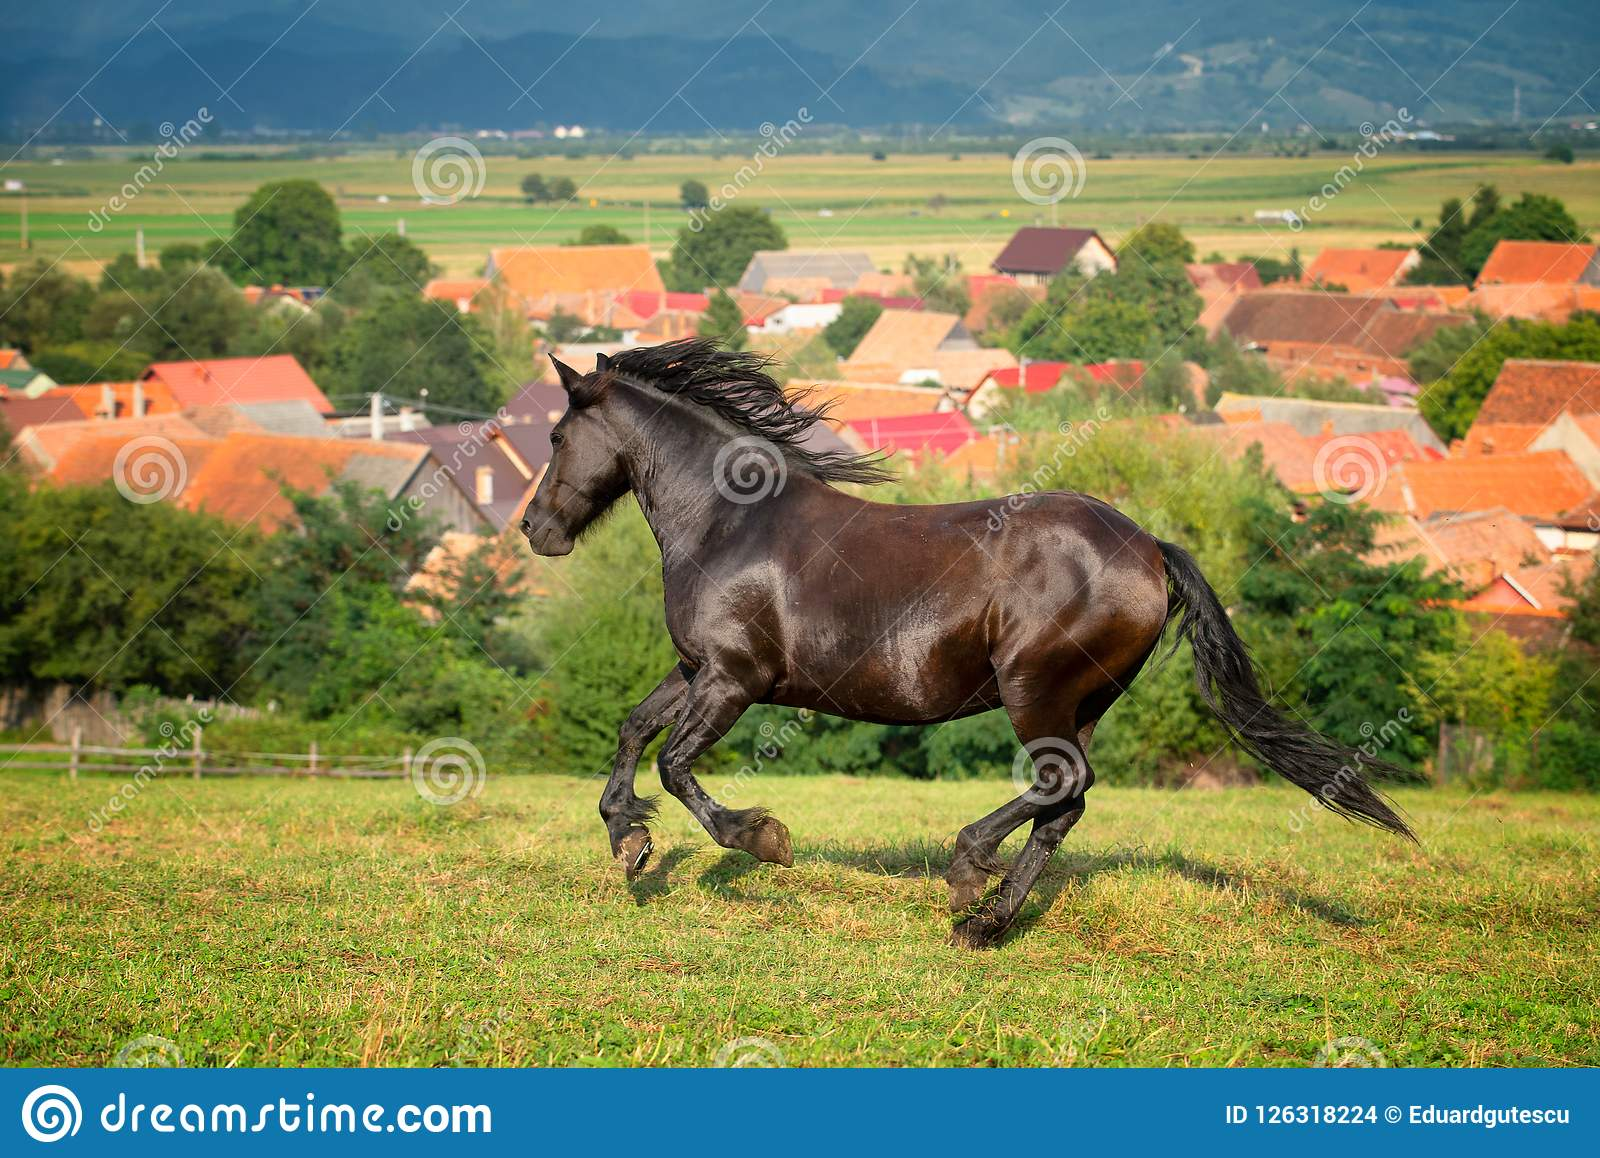 Arabian brown horse running at the farm in Romania